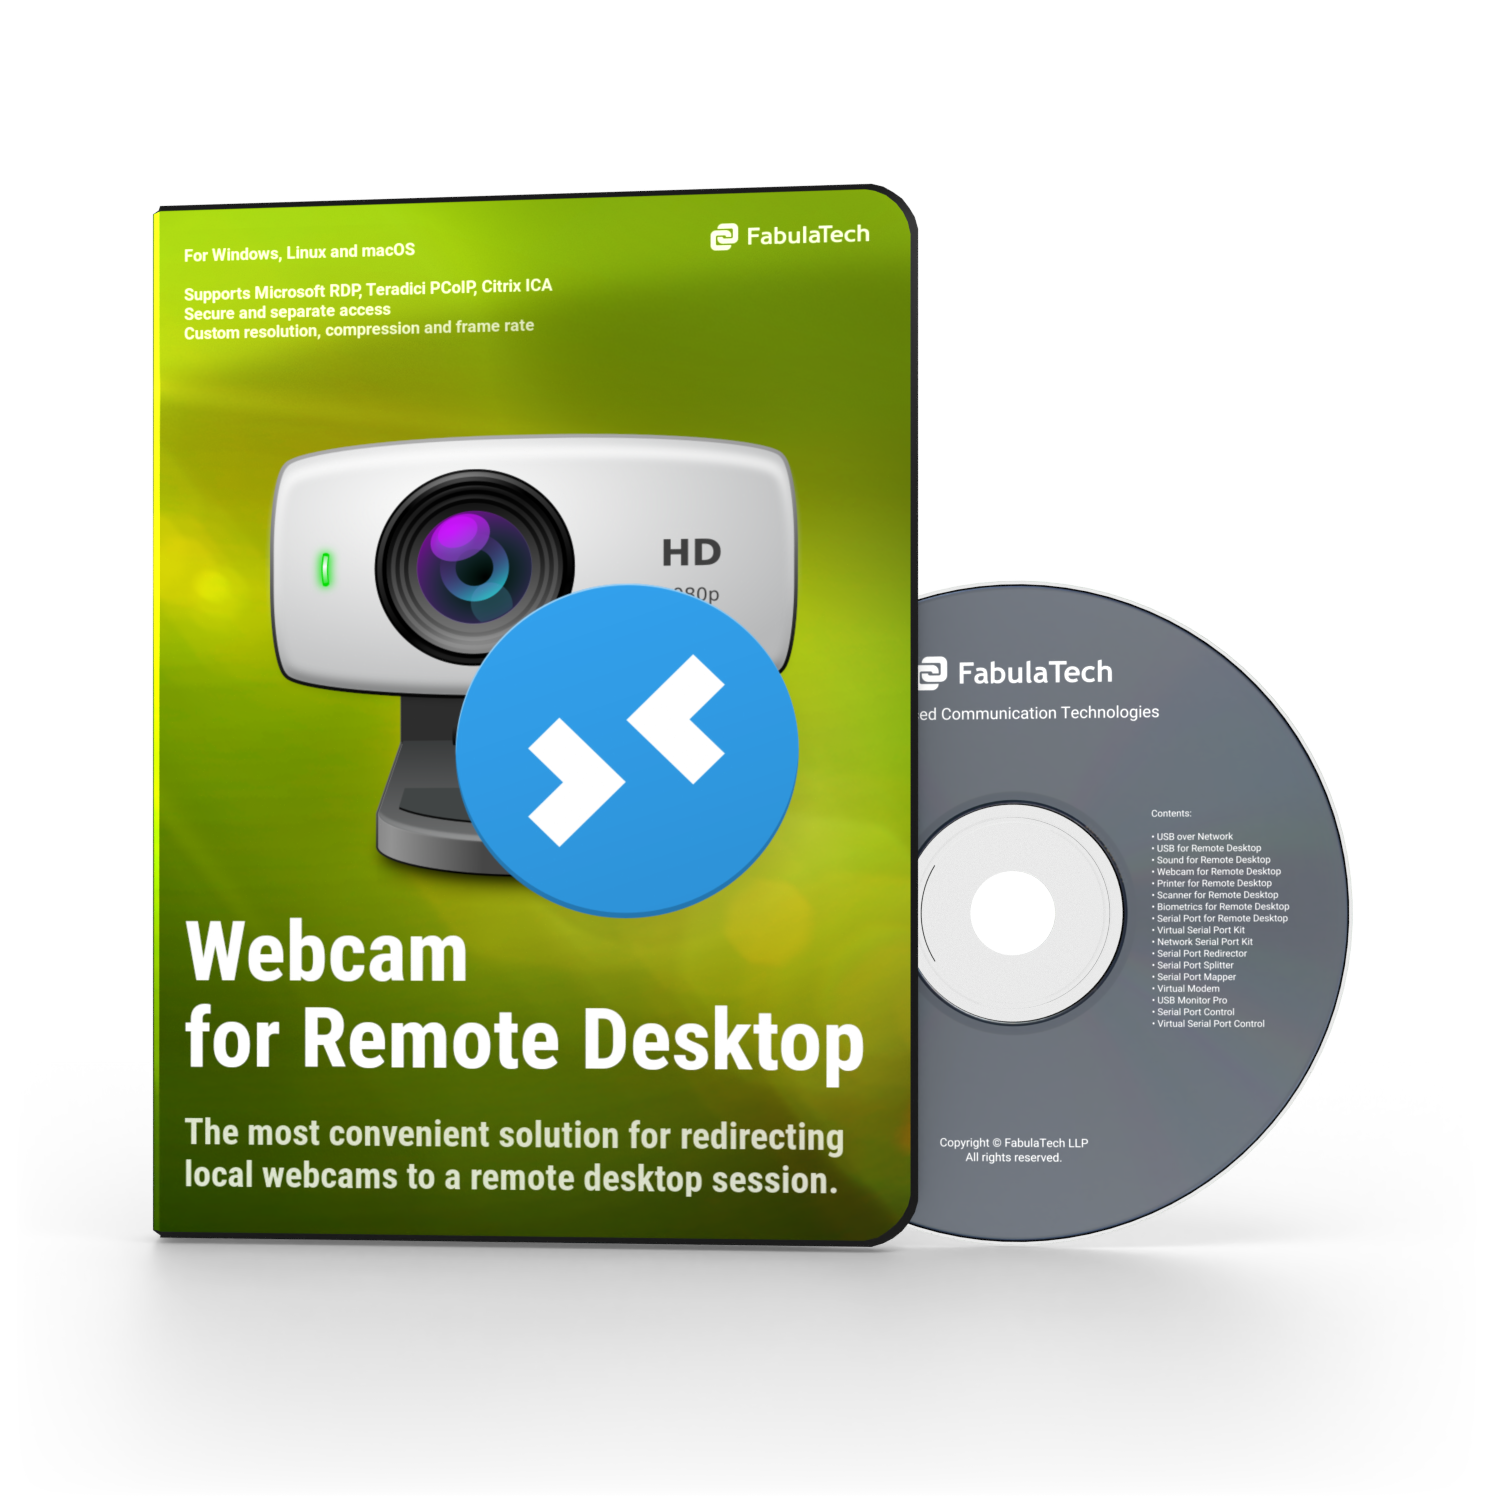 Webcam for Remote Desktop Box and CD PNG 750x750